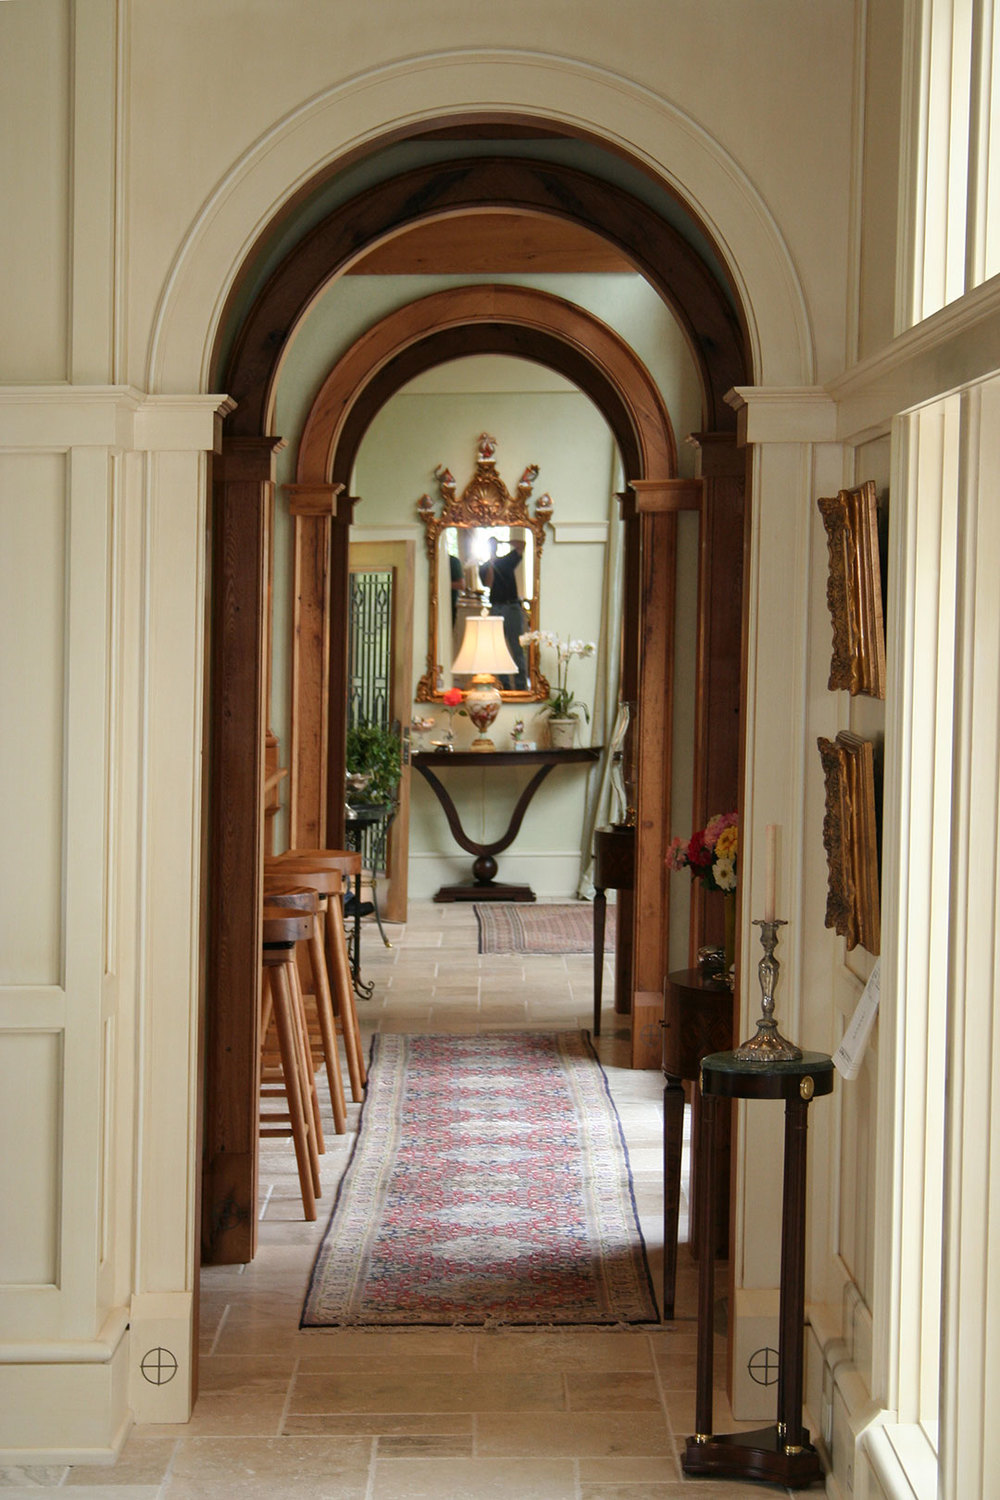 Wall Paneling & Archways